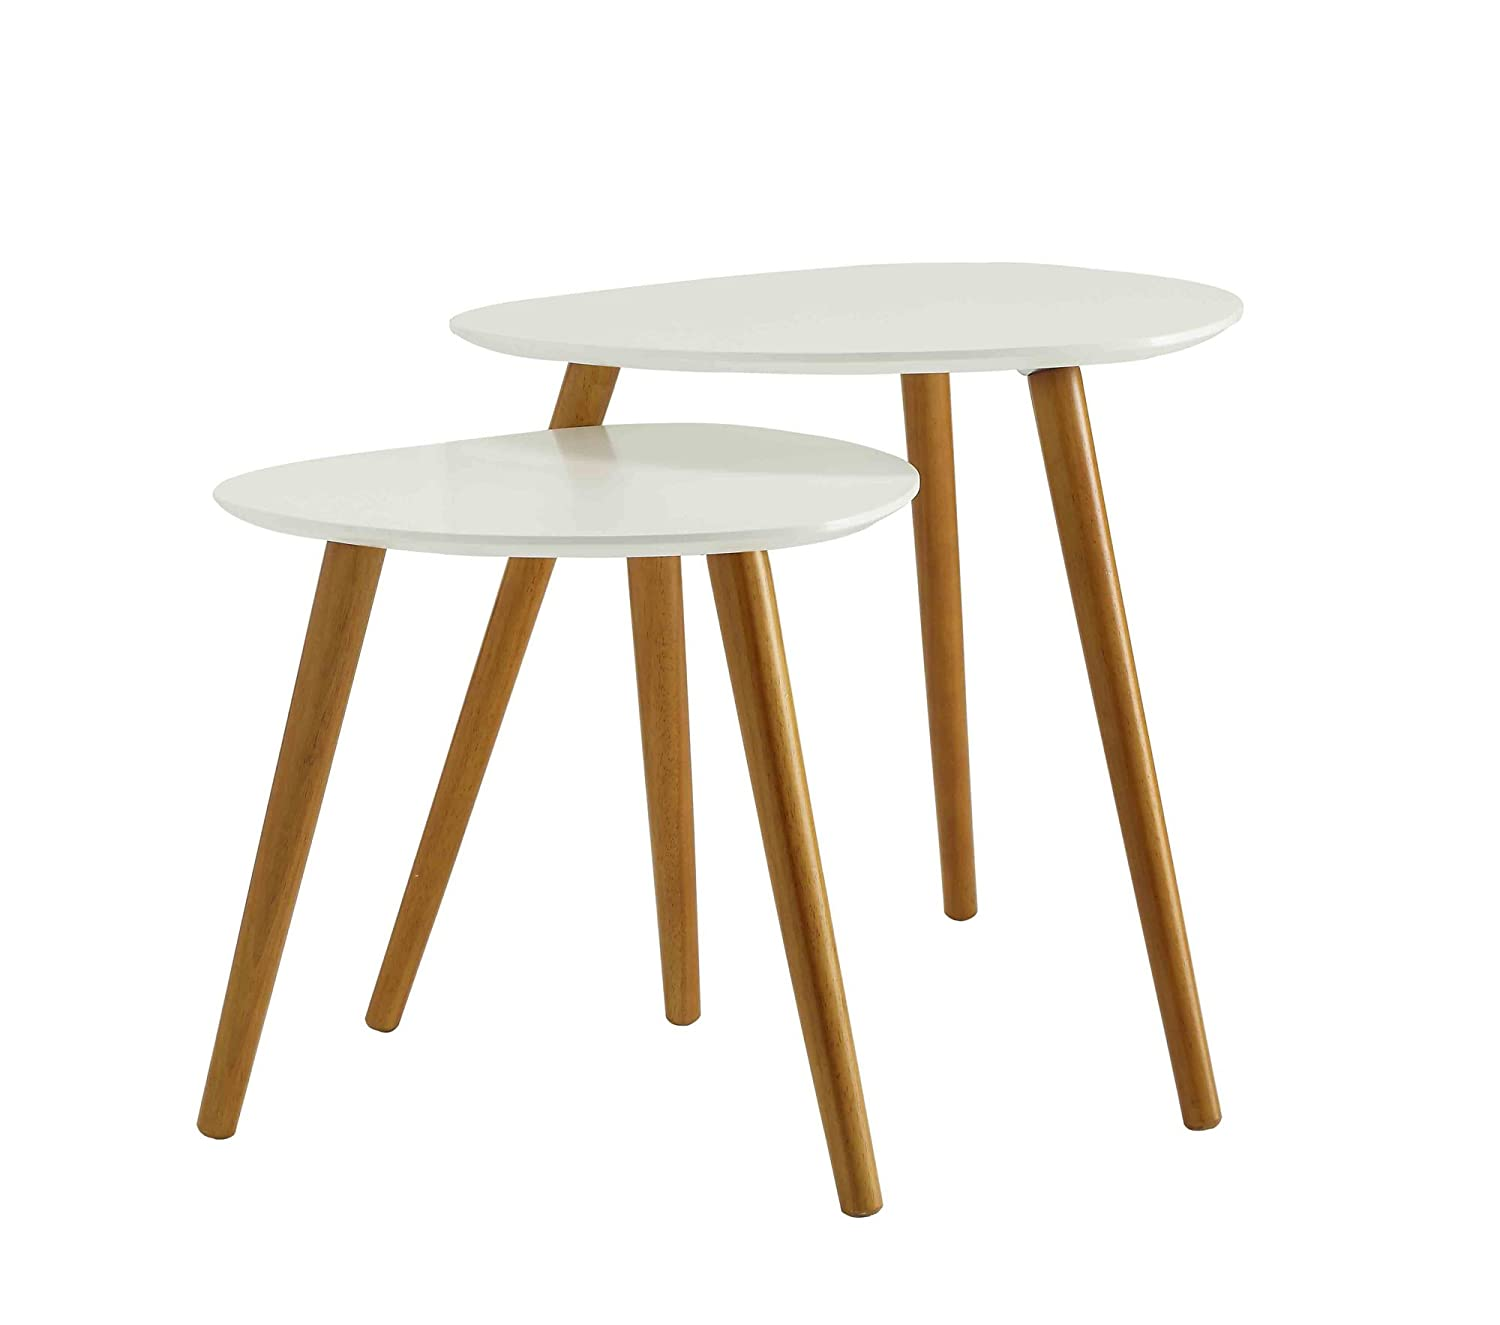 Convenience Concepts 203542 Oslo End Tables, White/Natural